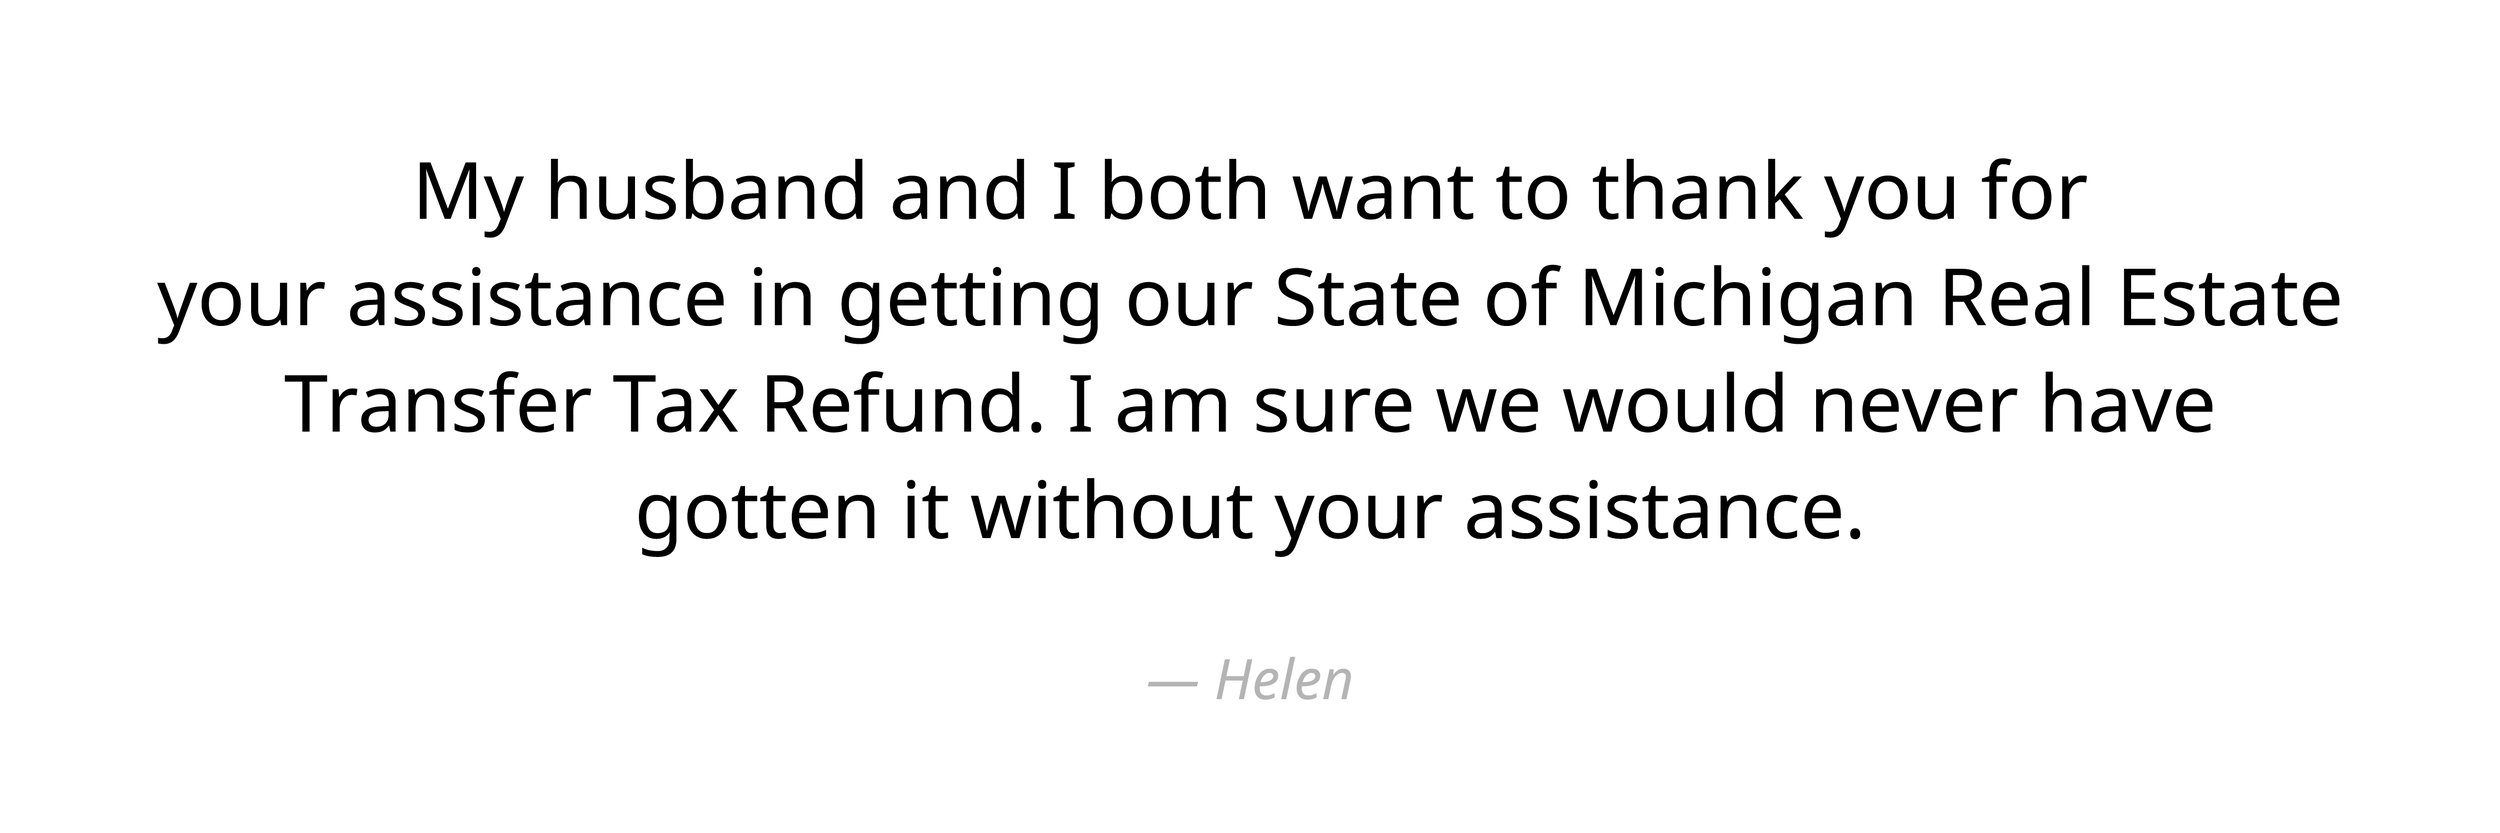 Testimonals_Home_helen-01.jpg